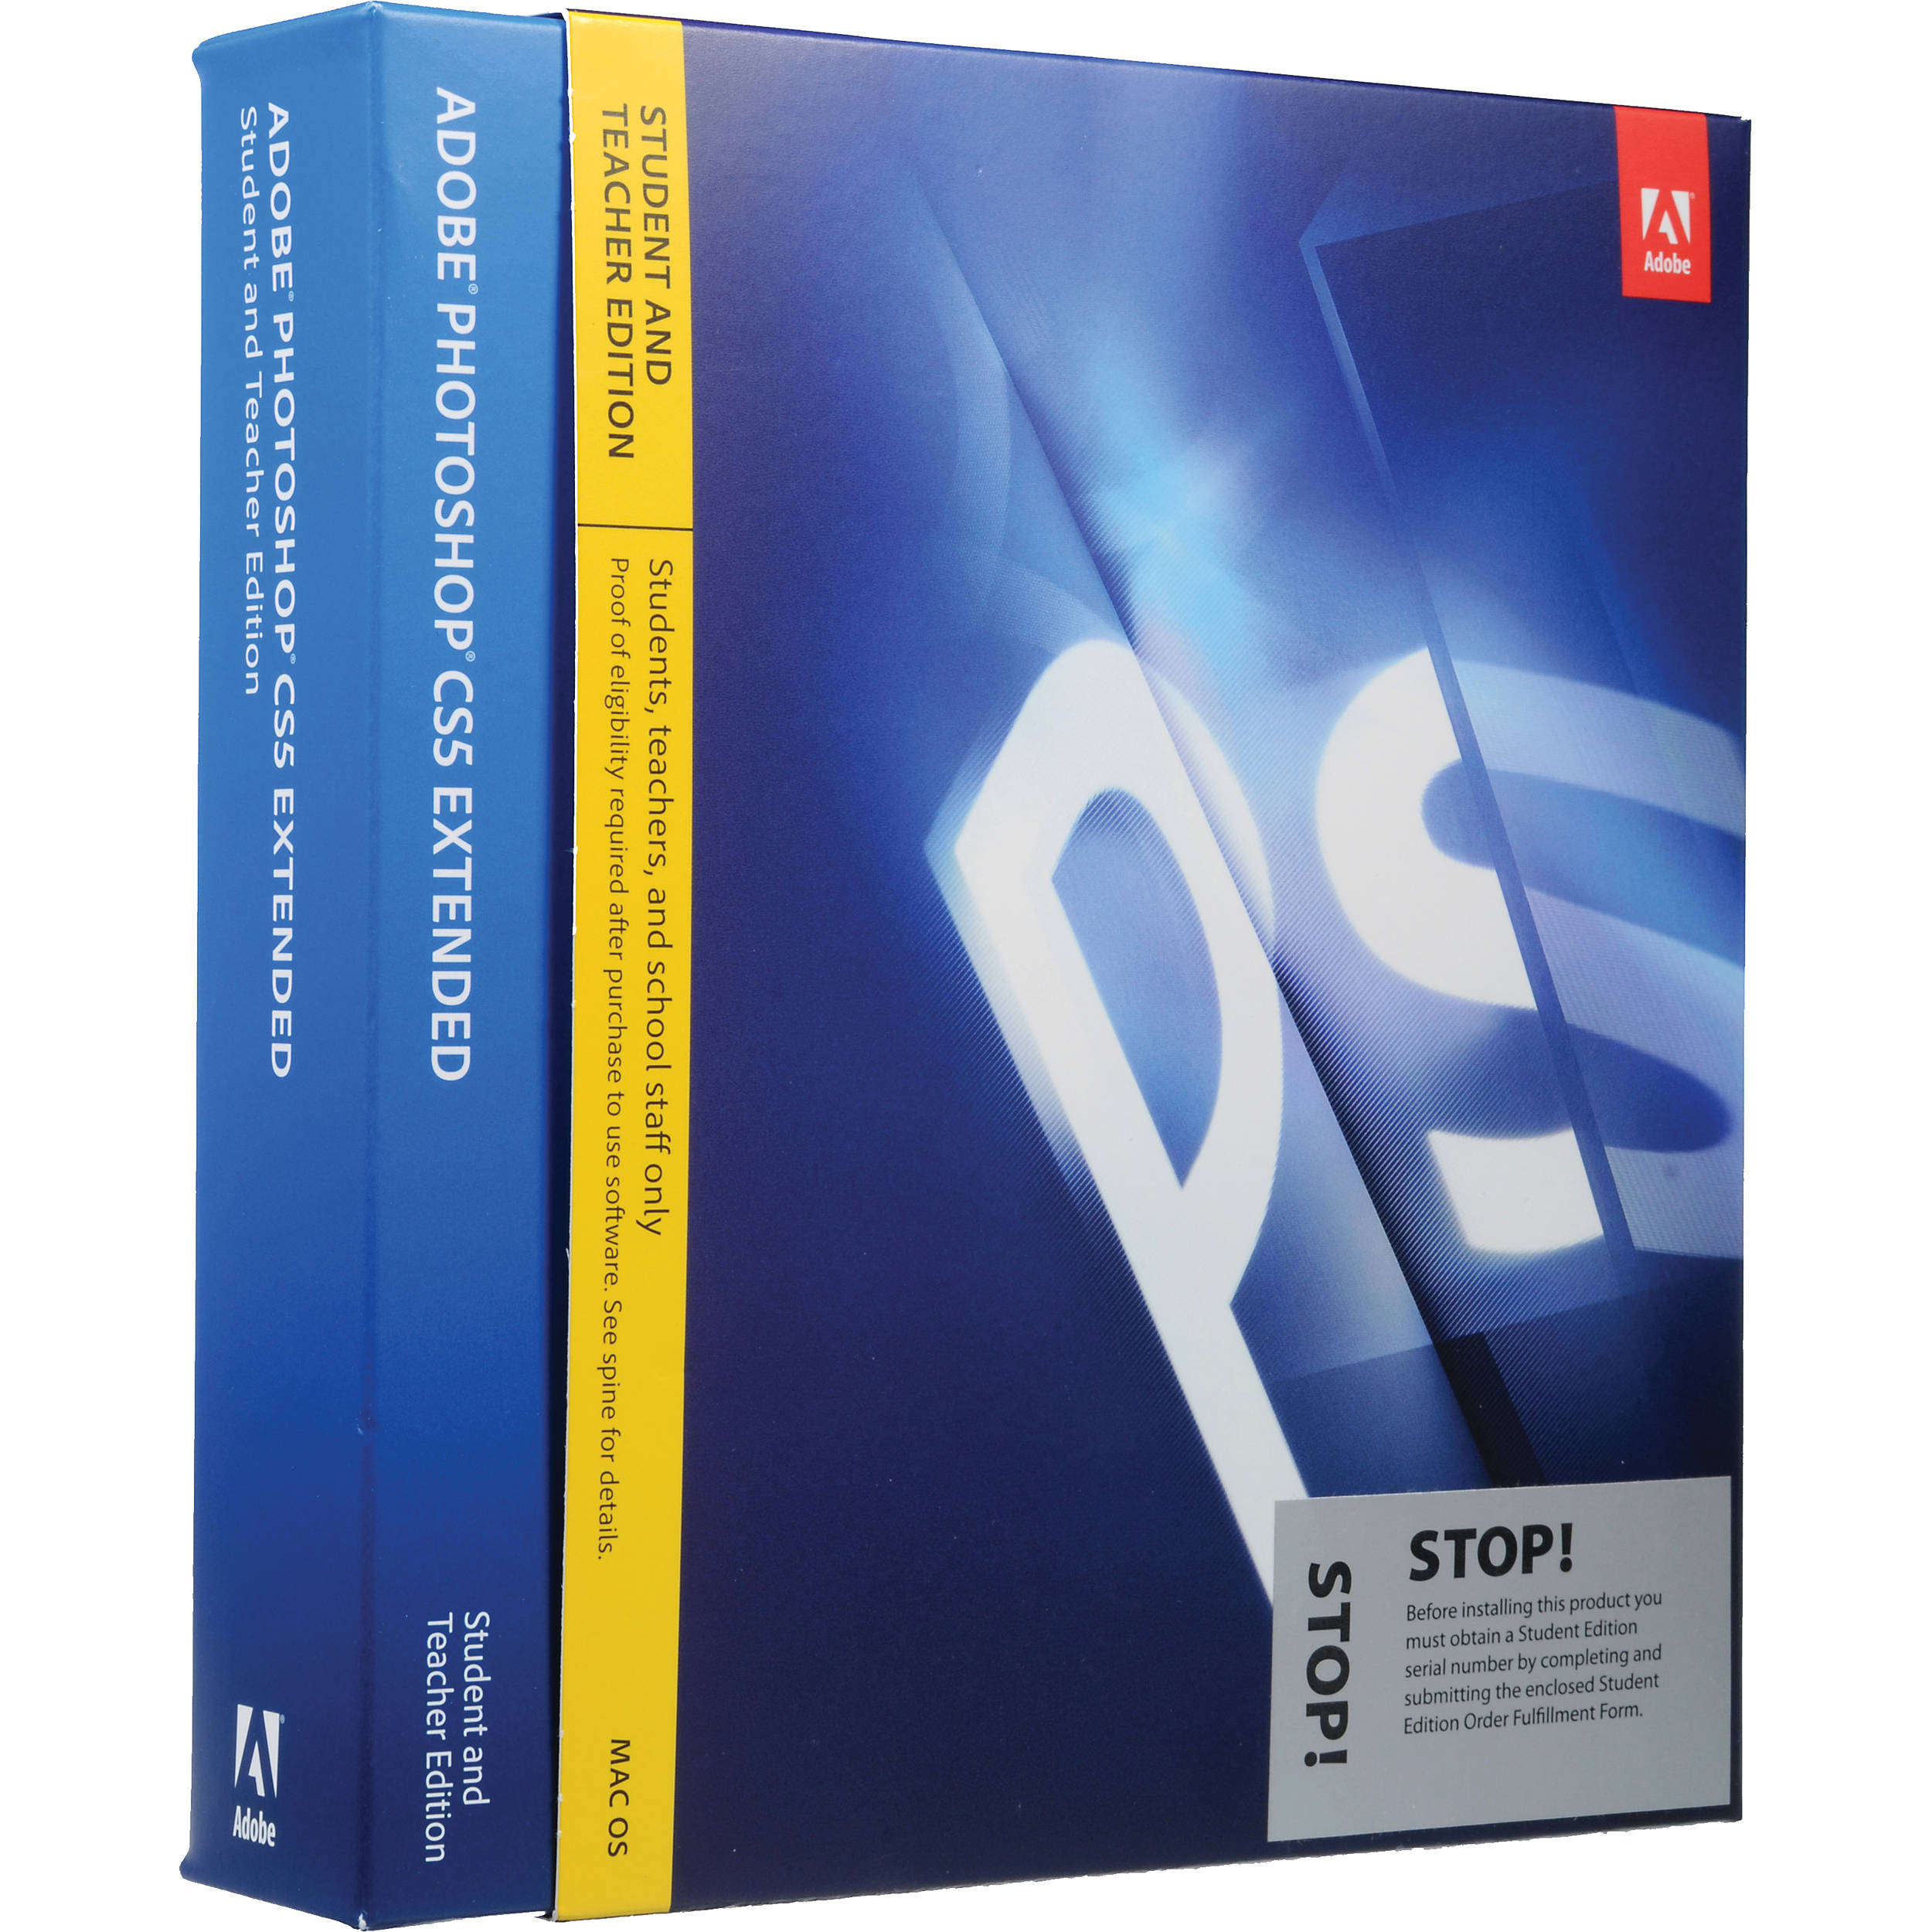 Adobe photoshop cs5 for mac torrent